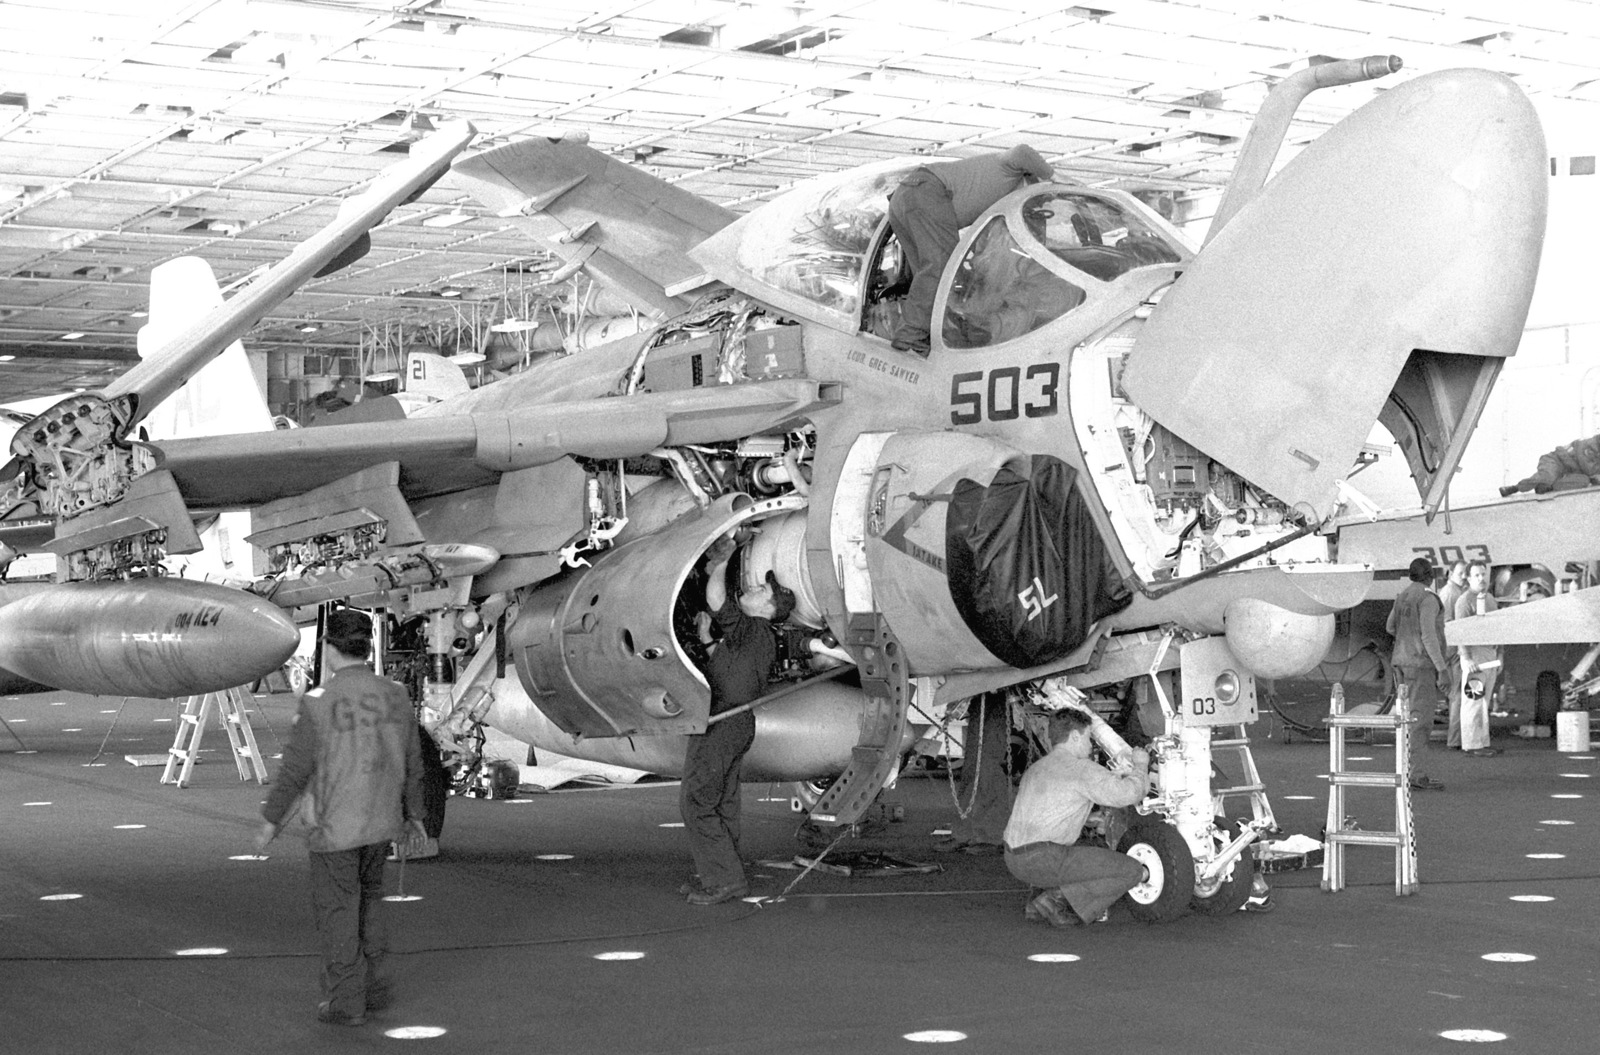 A gas turbine systems technician E (electrical) approaches a partially disassembled A-6E Intruder aircraft being worked on in the hangar bay of the aircraft carrier USS JOHN F. KENNEDY (CV-67) during FLEET EX 1-90